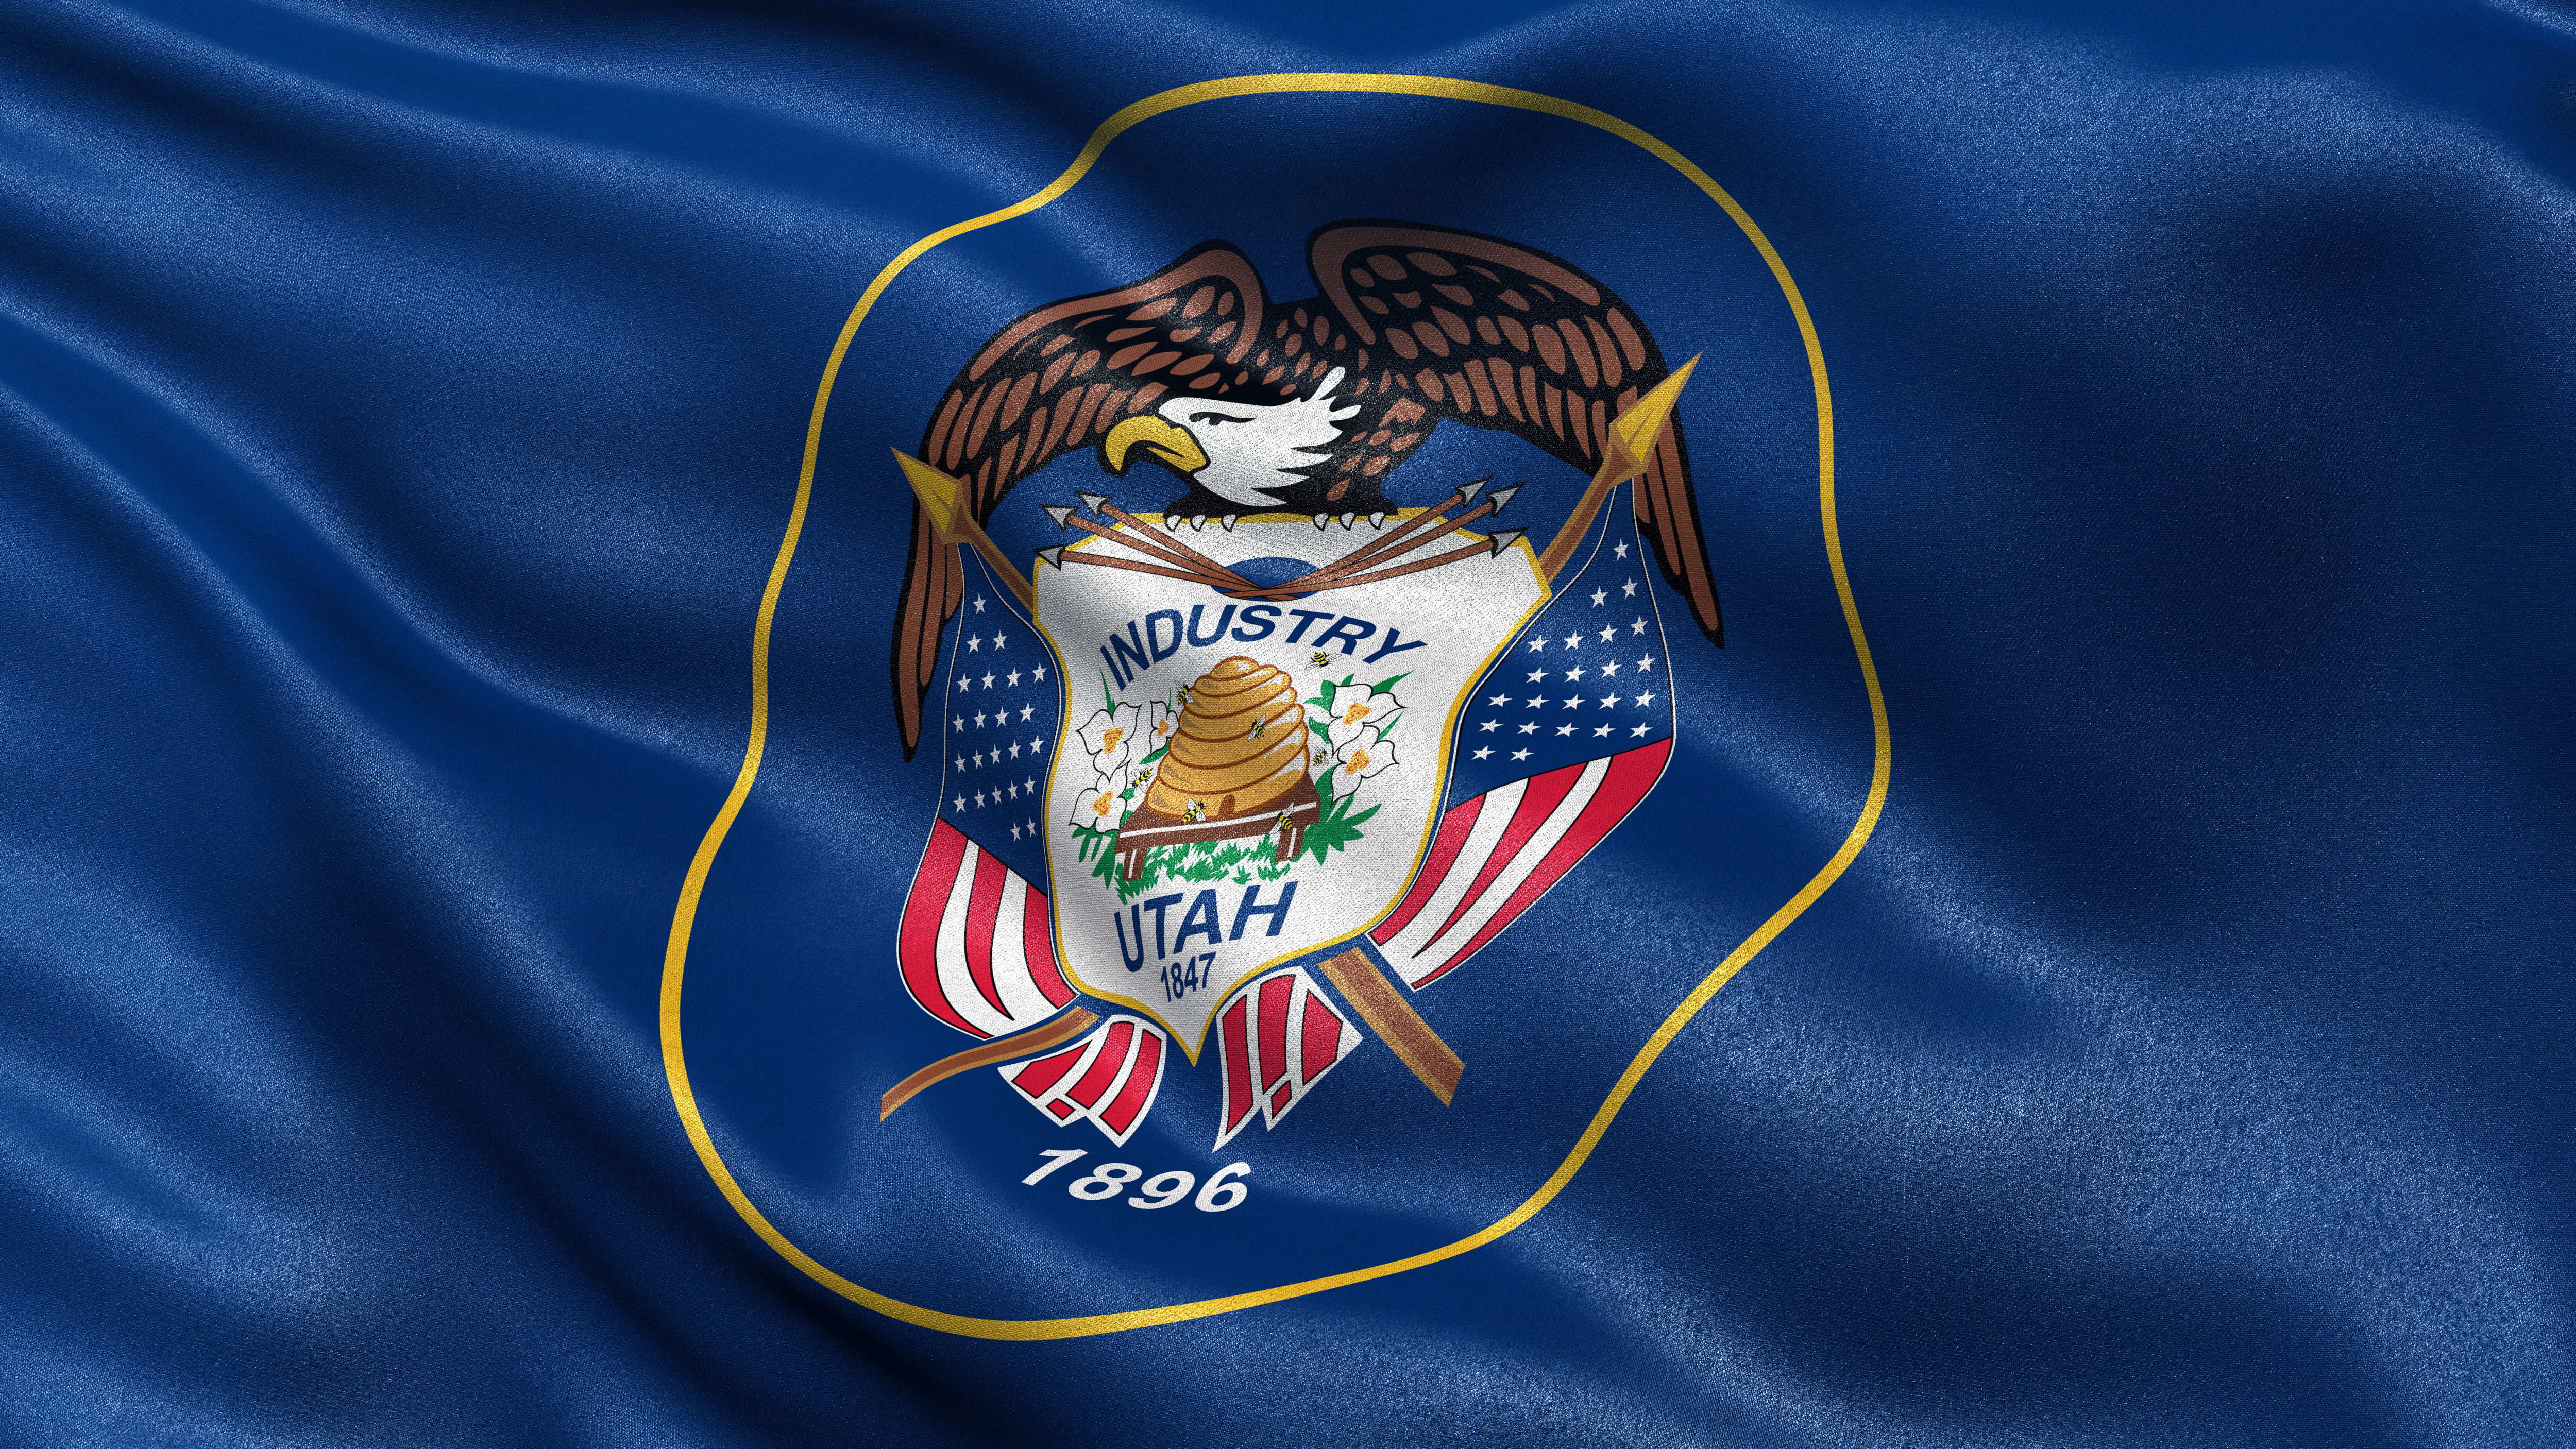 An image of a Utah flag